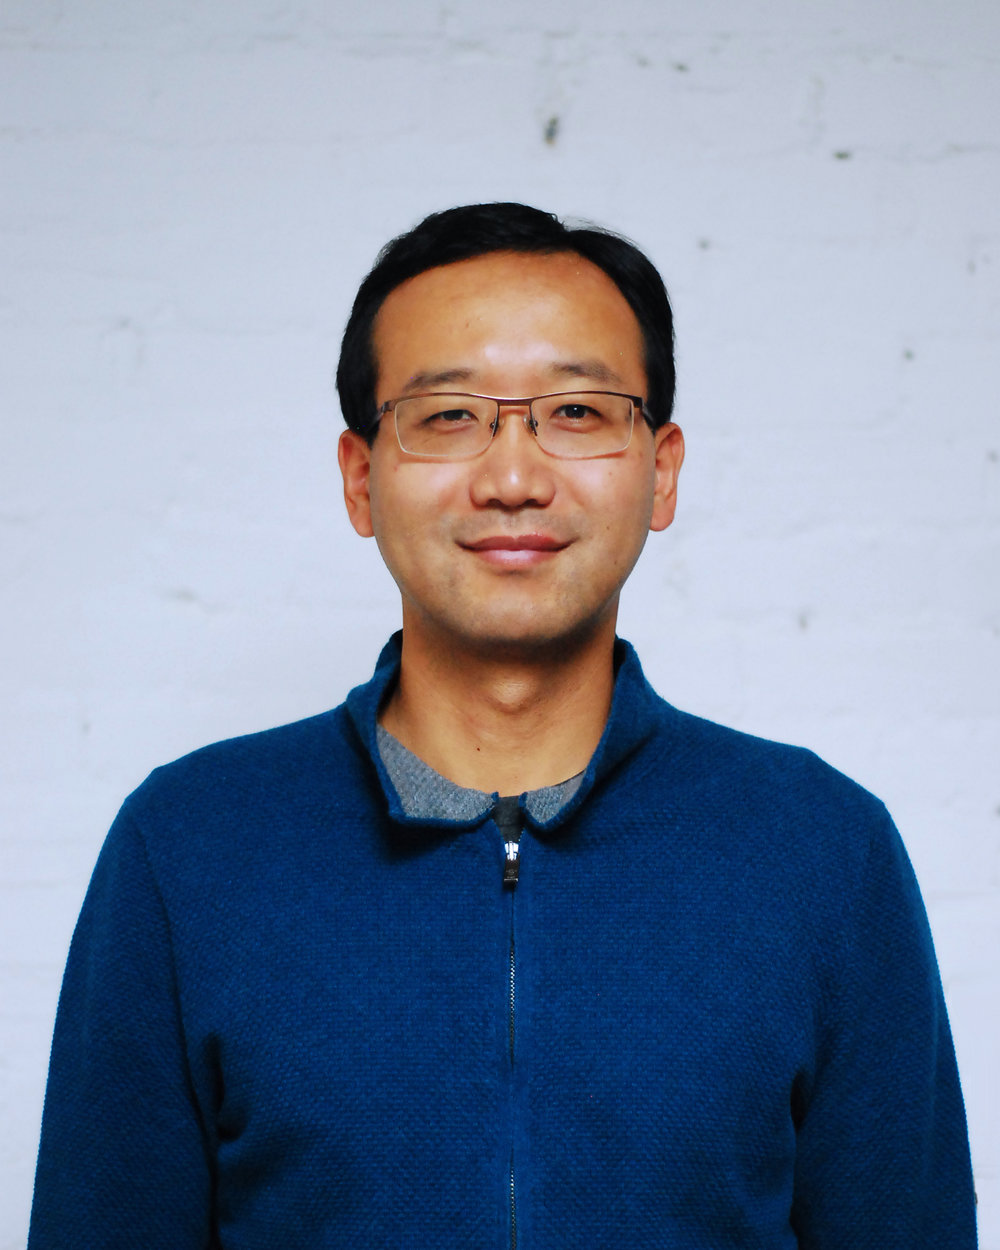 Bin Zhu - Co-Founder and Chief Technical Officer